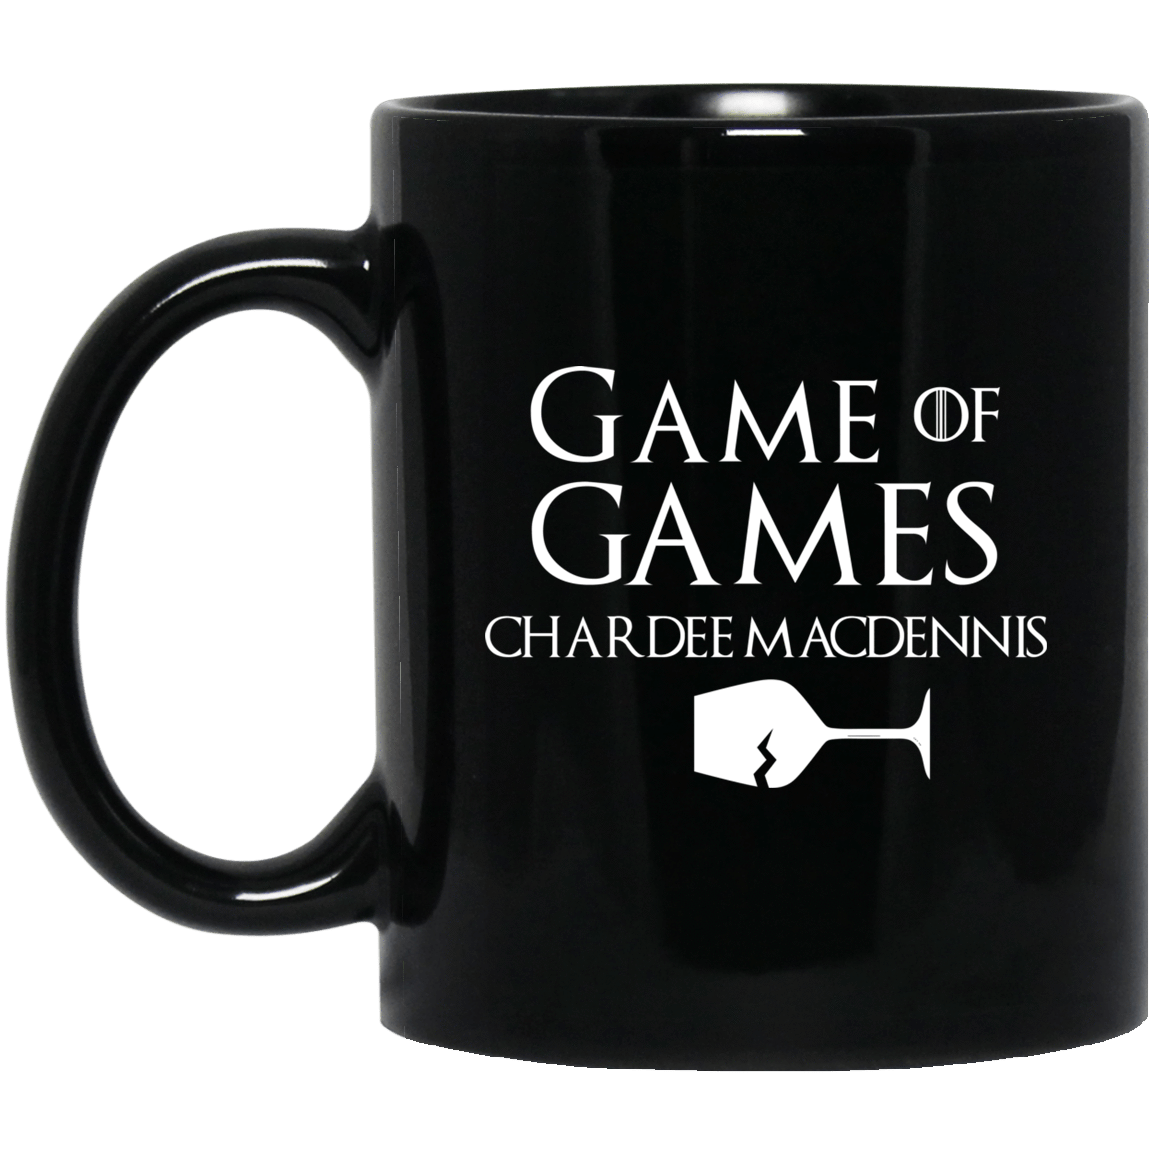 Game Of Games Chardee Macdennis Mug 1065-10181-72957276-49307 - Tee Ript